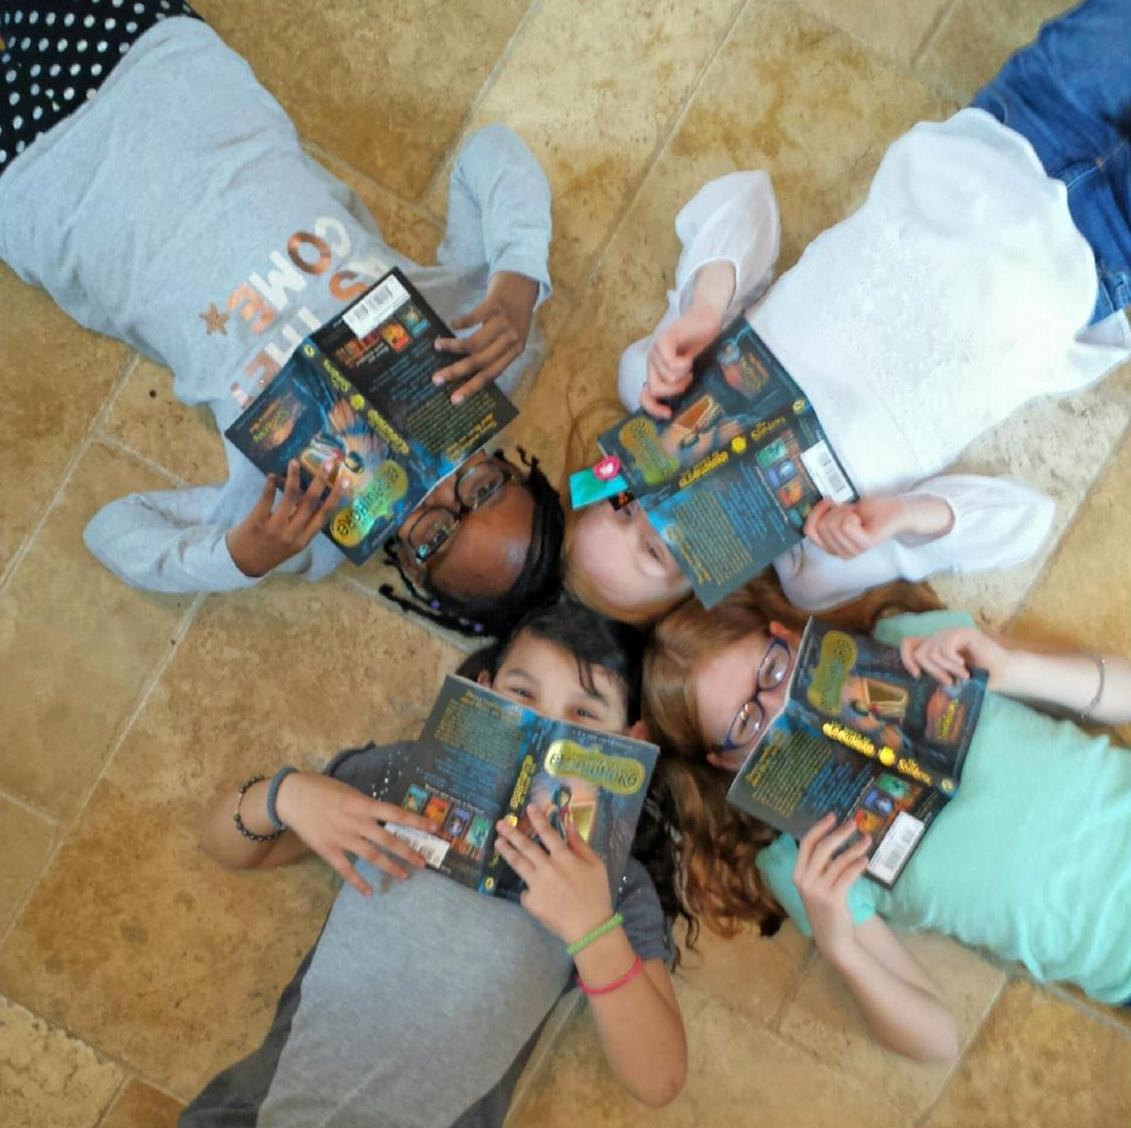 The Girlfriends Book Club - Nadia, Nicole, Makayla, and Aubrey -  photo by Tonya Wright